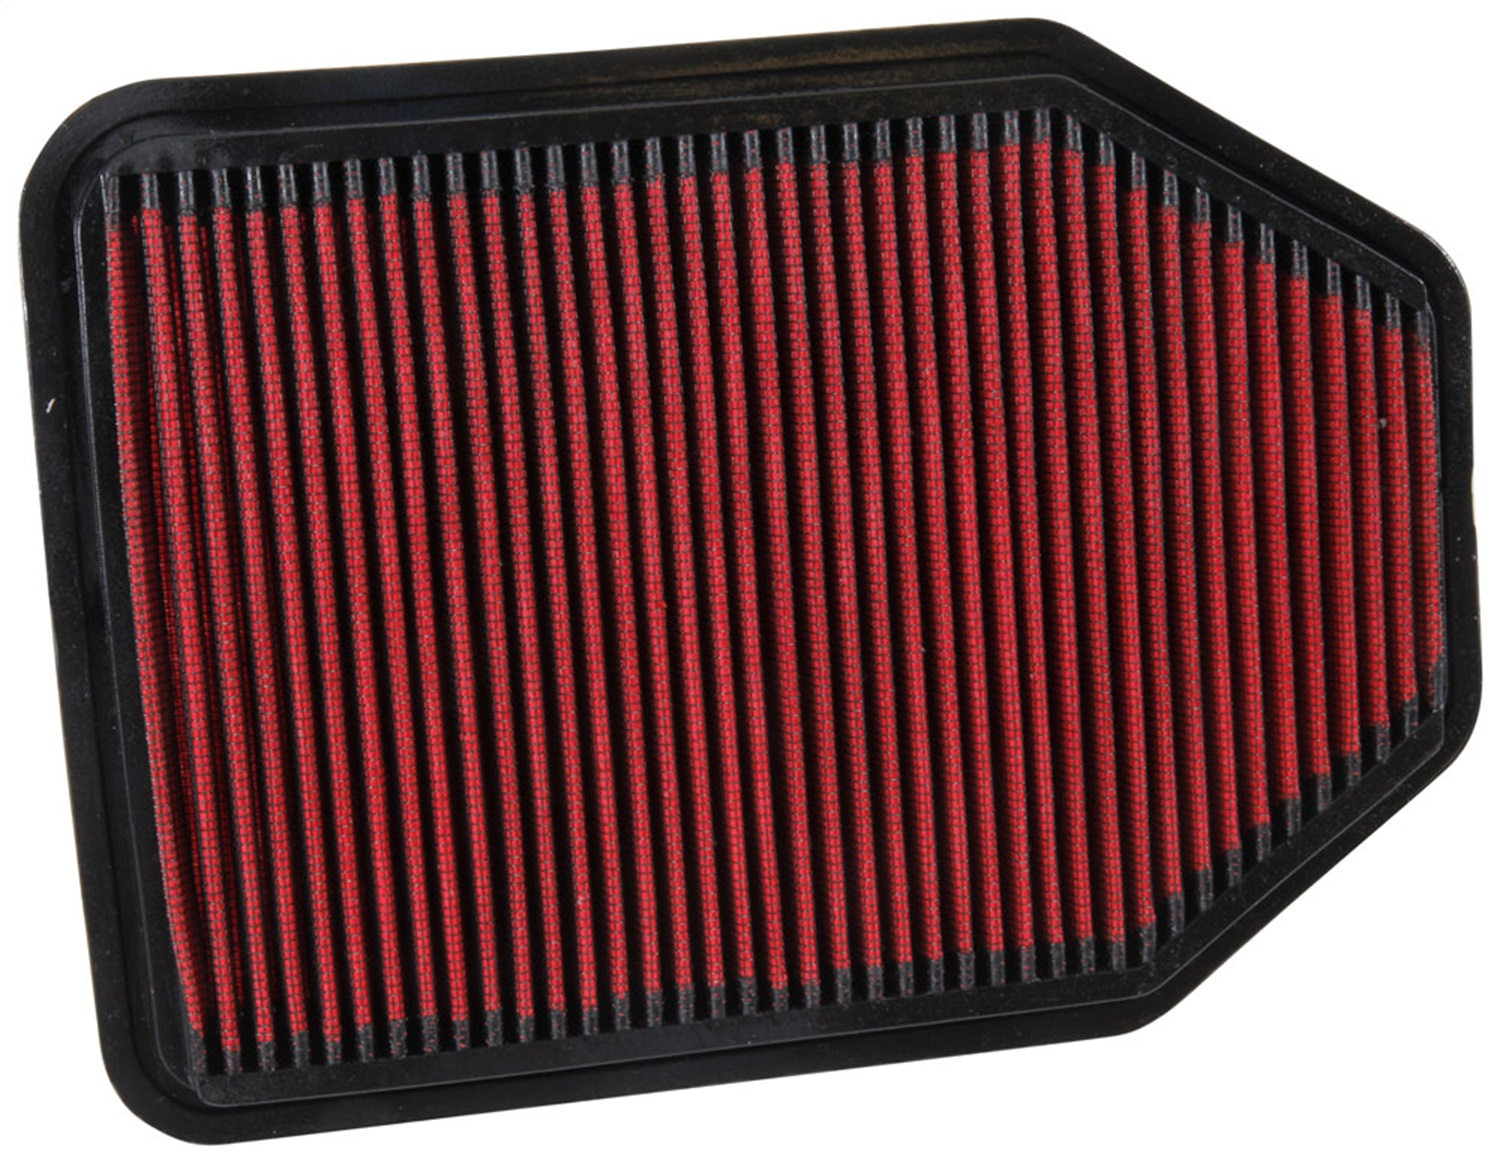 K/&N Filters 33-2094 Washable and Reusable Car Replacement Air Filter